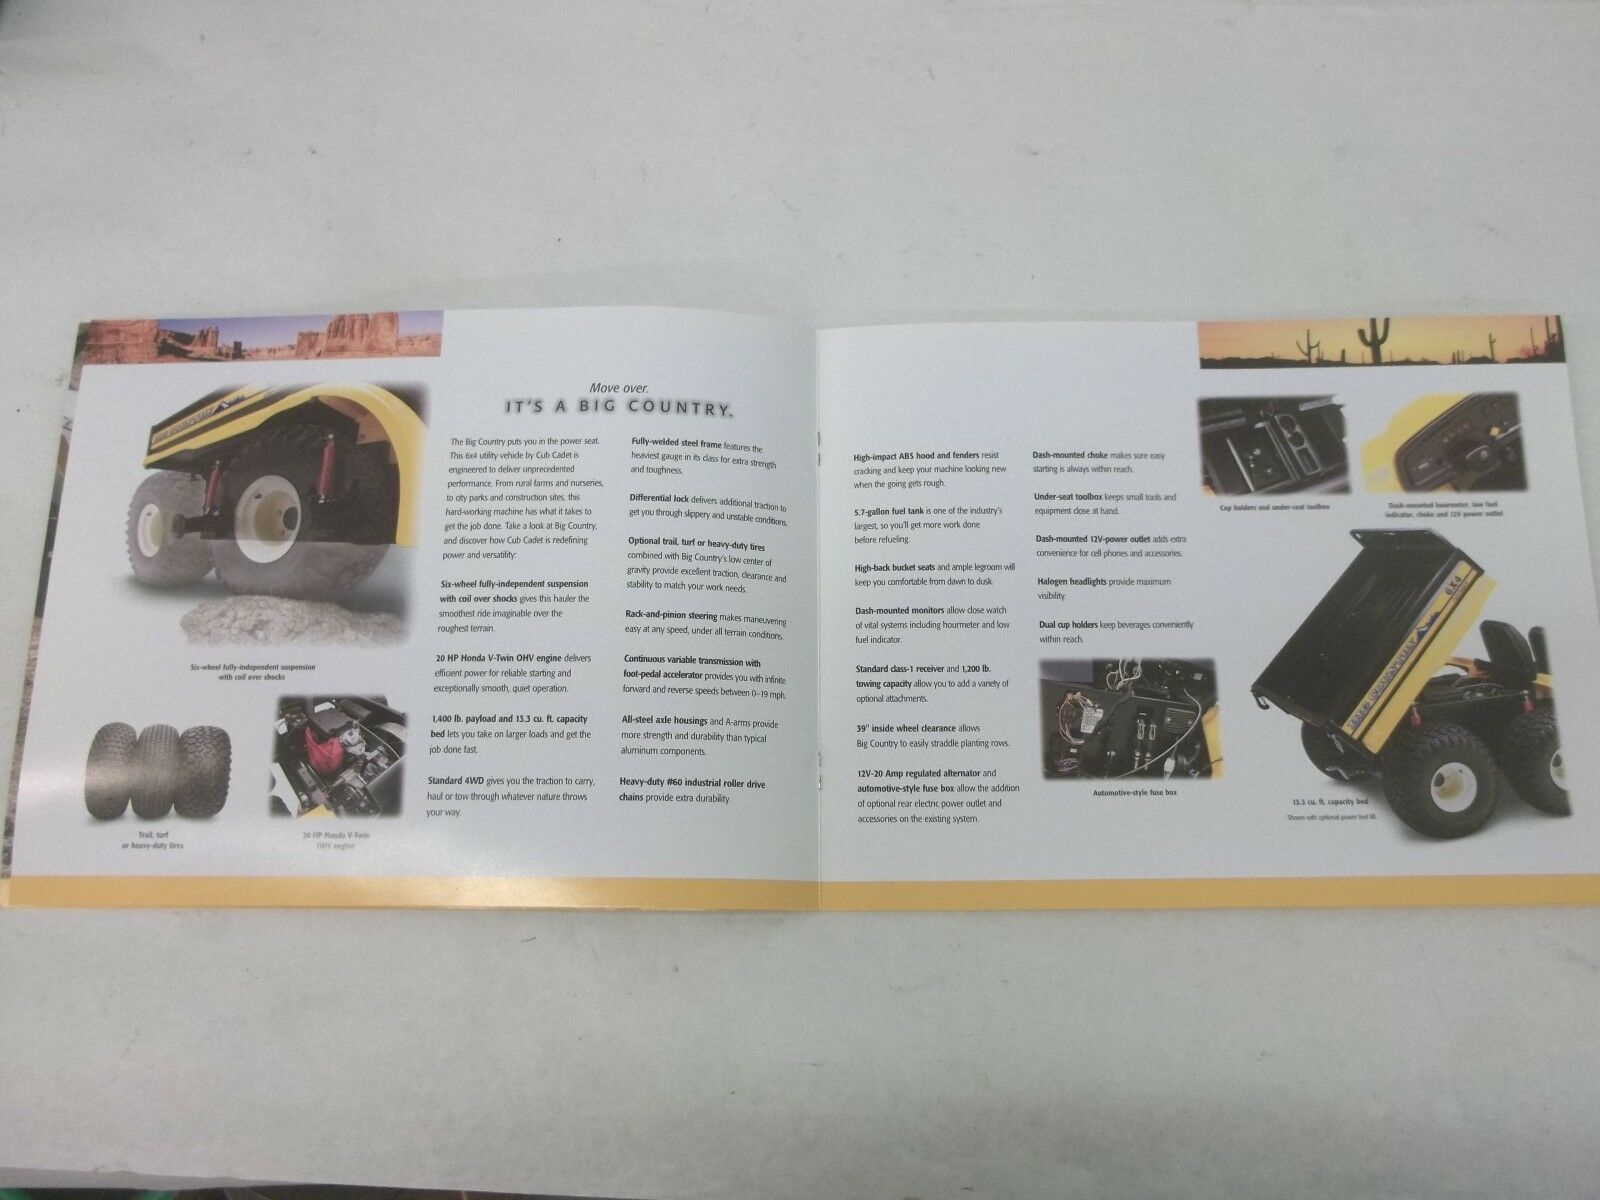 Cub Cadet Big Country 6x4 Model 640 Utility Vehicle Sales Brochure Classic Car Fuse Box Norton Secured Powered By Verisign